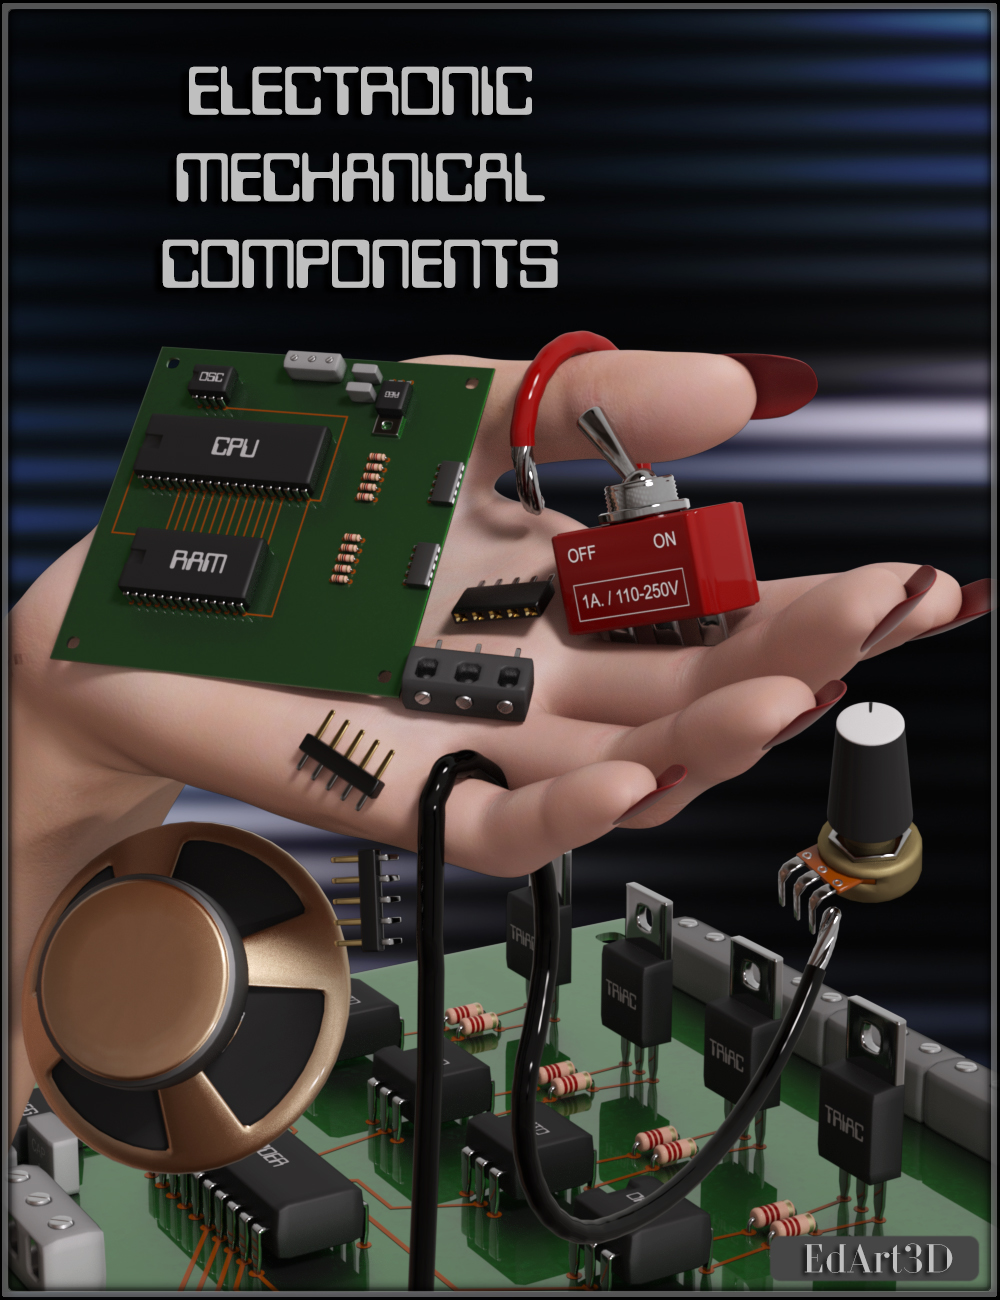 Electronic Mechanical Components